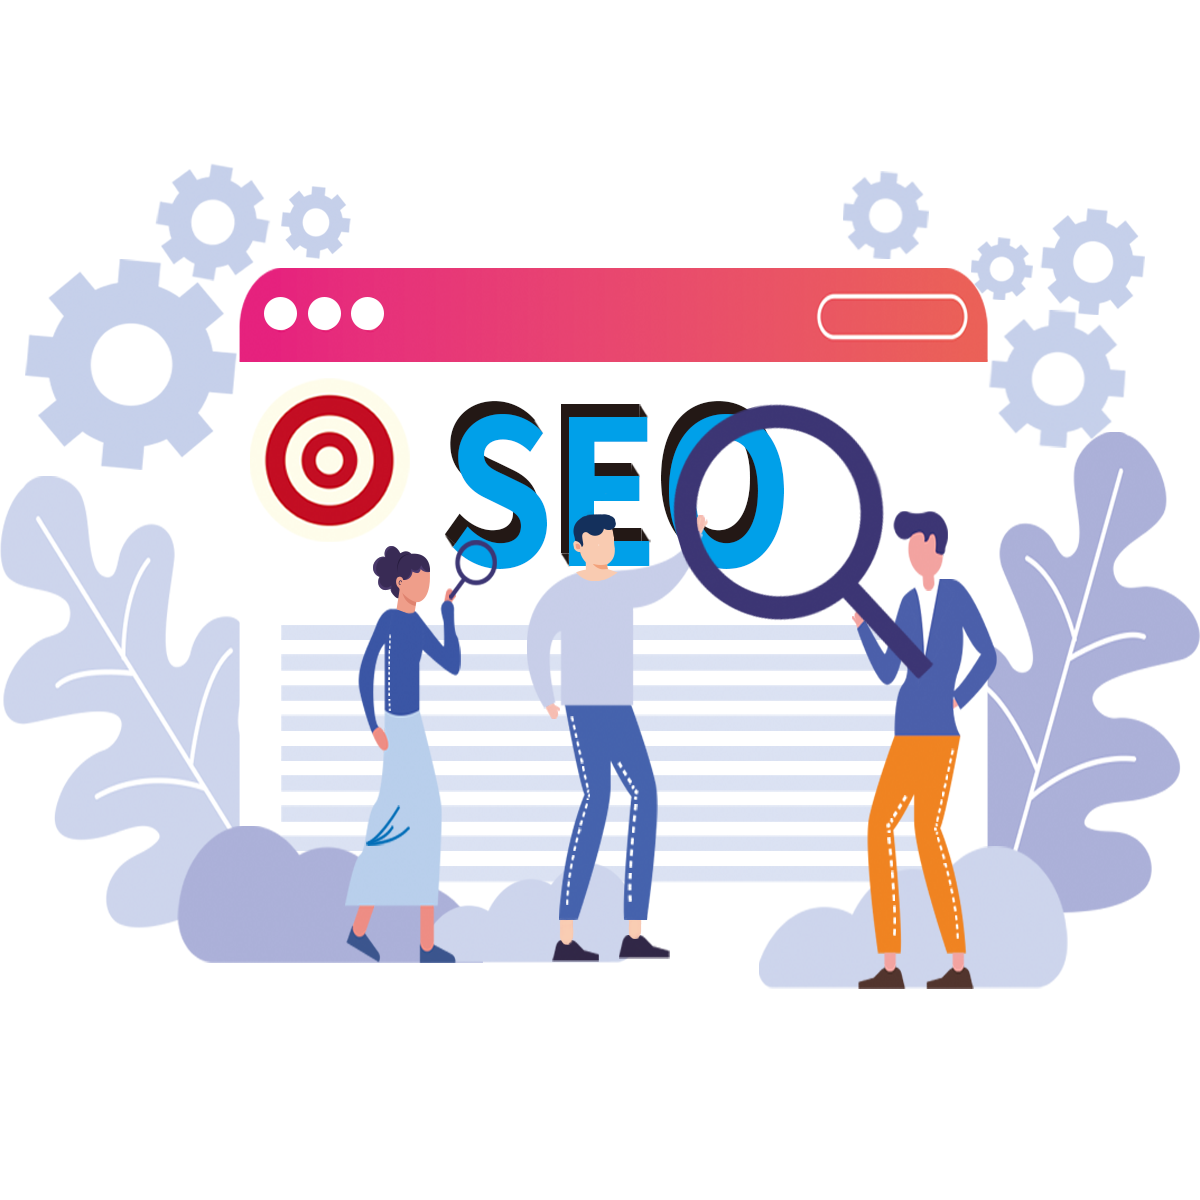 people-standing-in-front-of-seo-services-sign-in-australia-and-new-zealnad